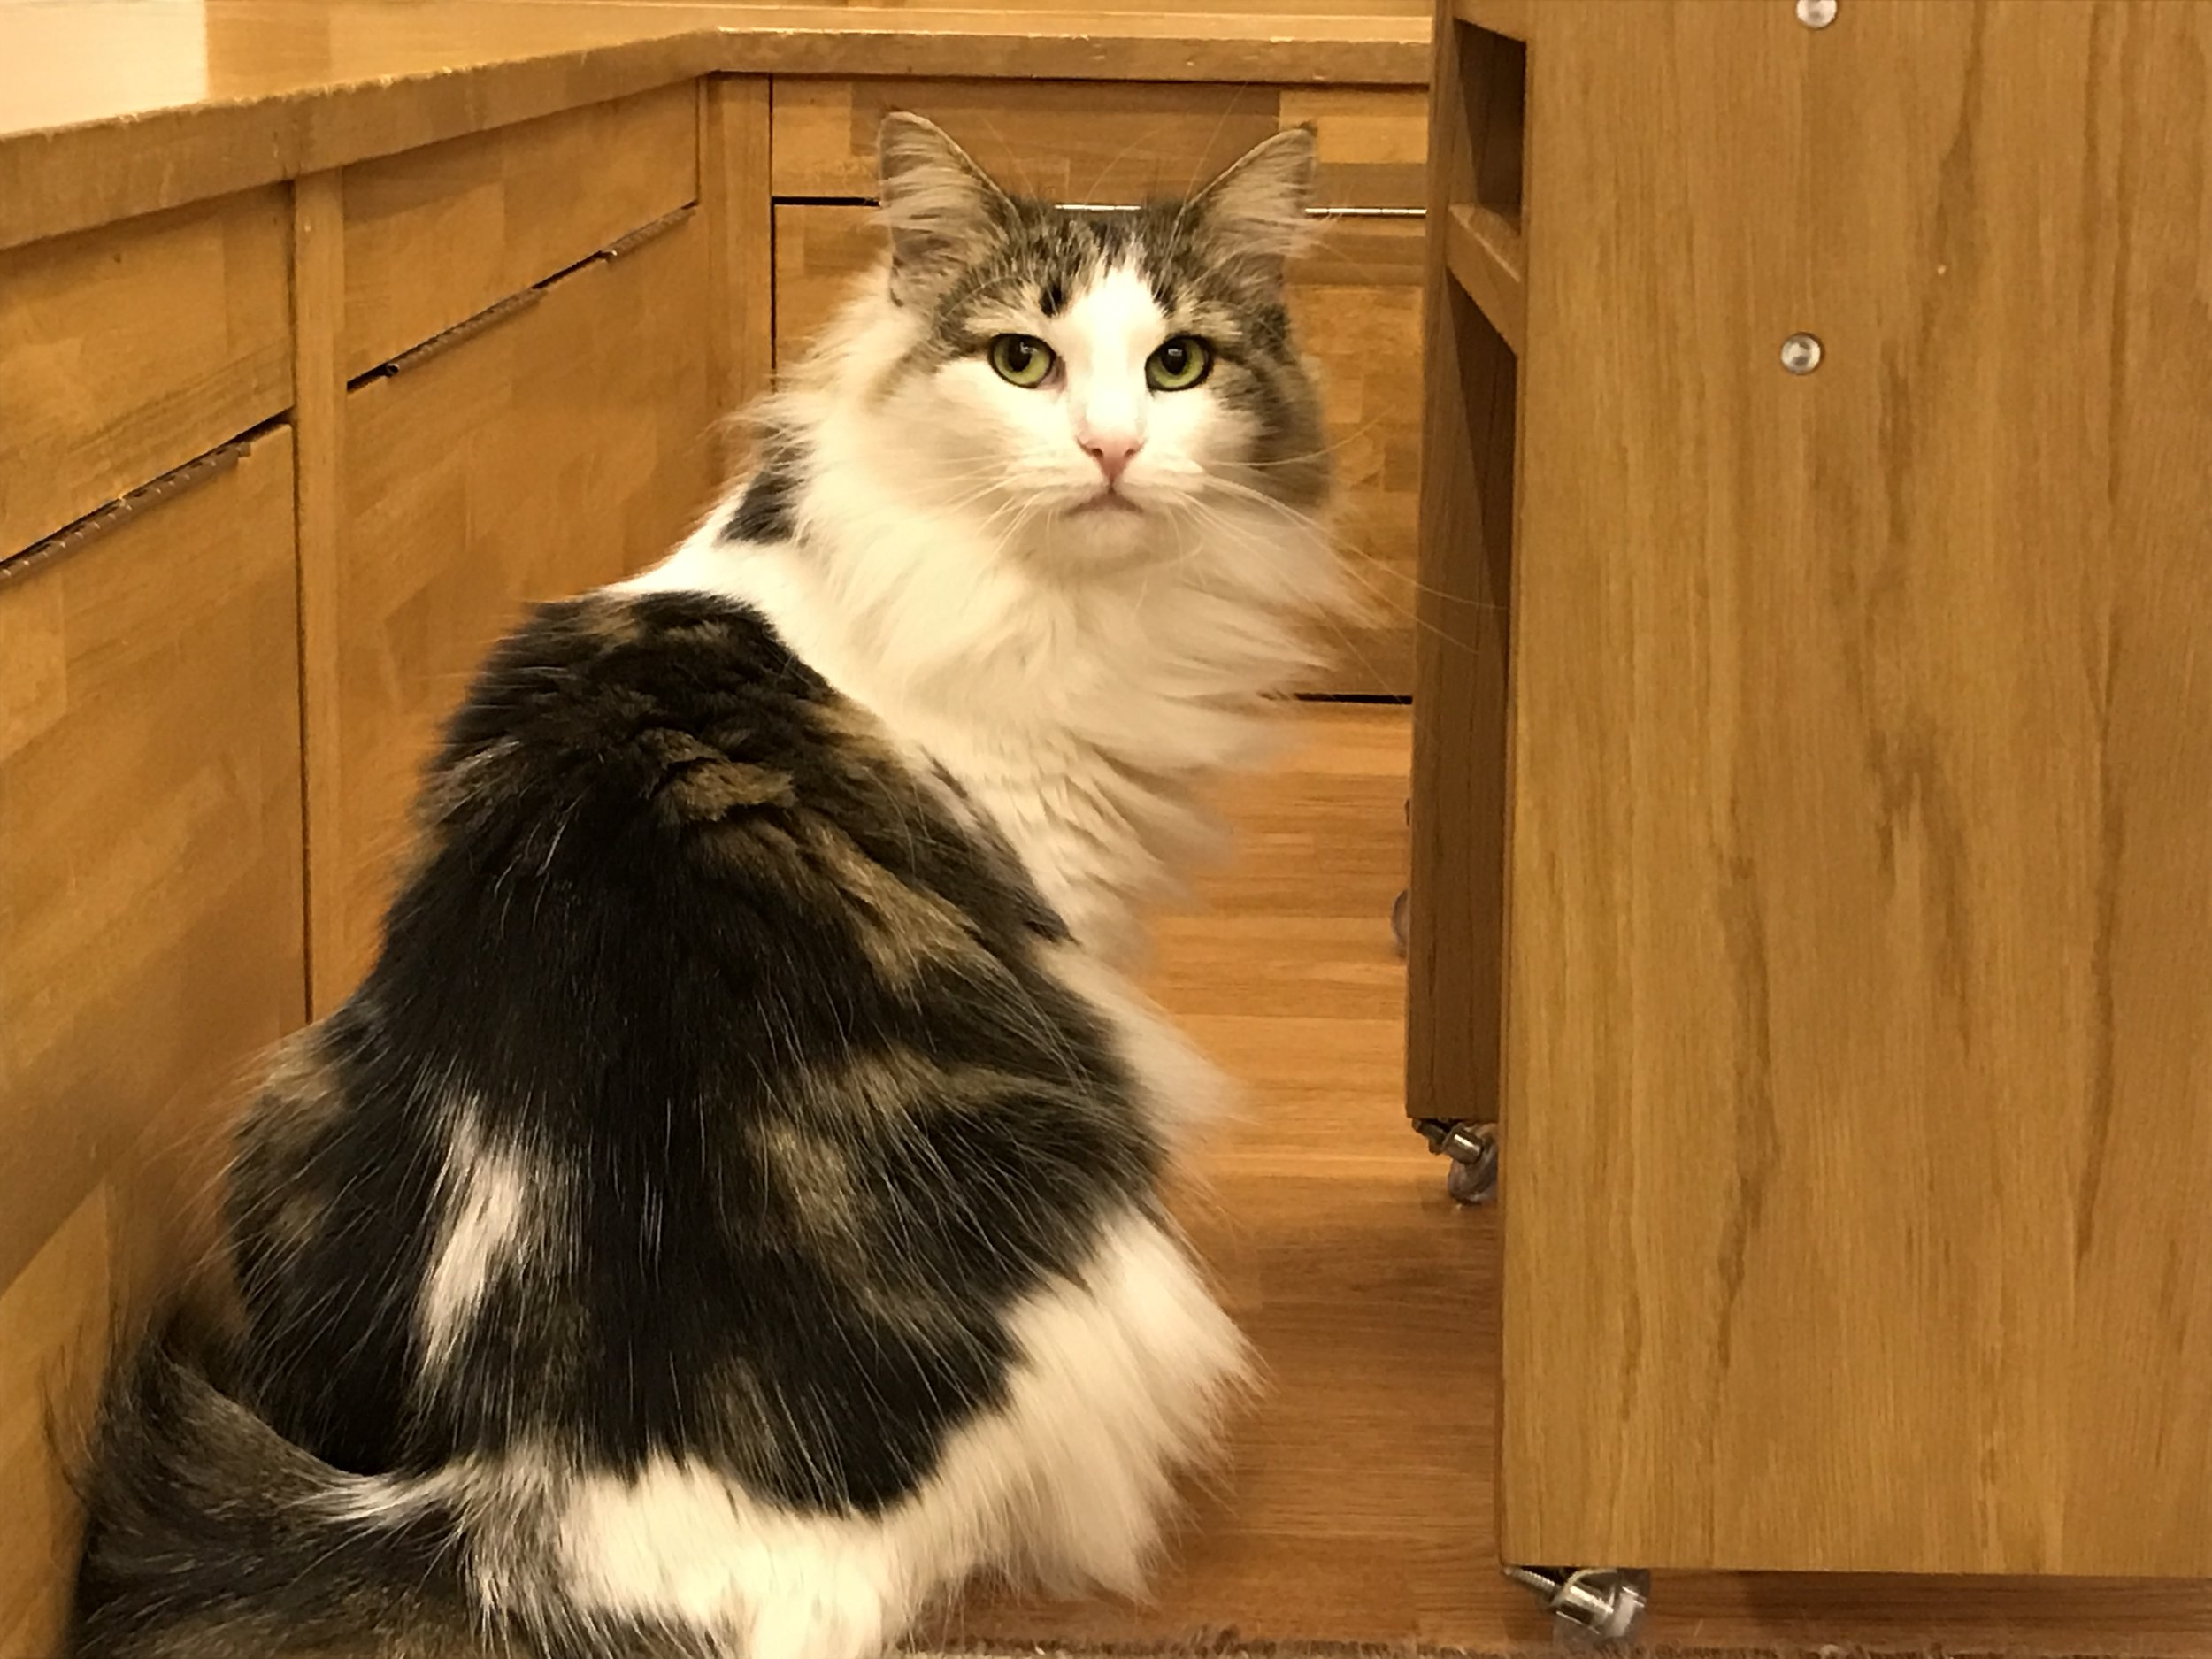 There are many gorgeous long-haired cats in residence like Maine Coon and Norwegian Forest